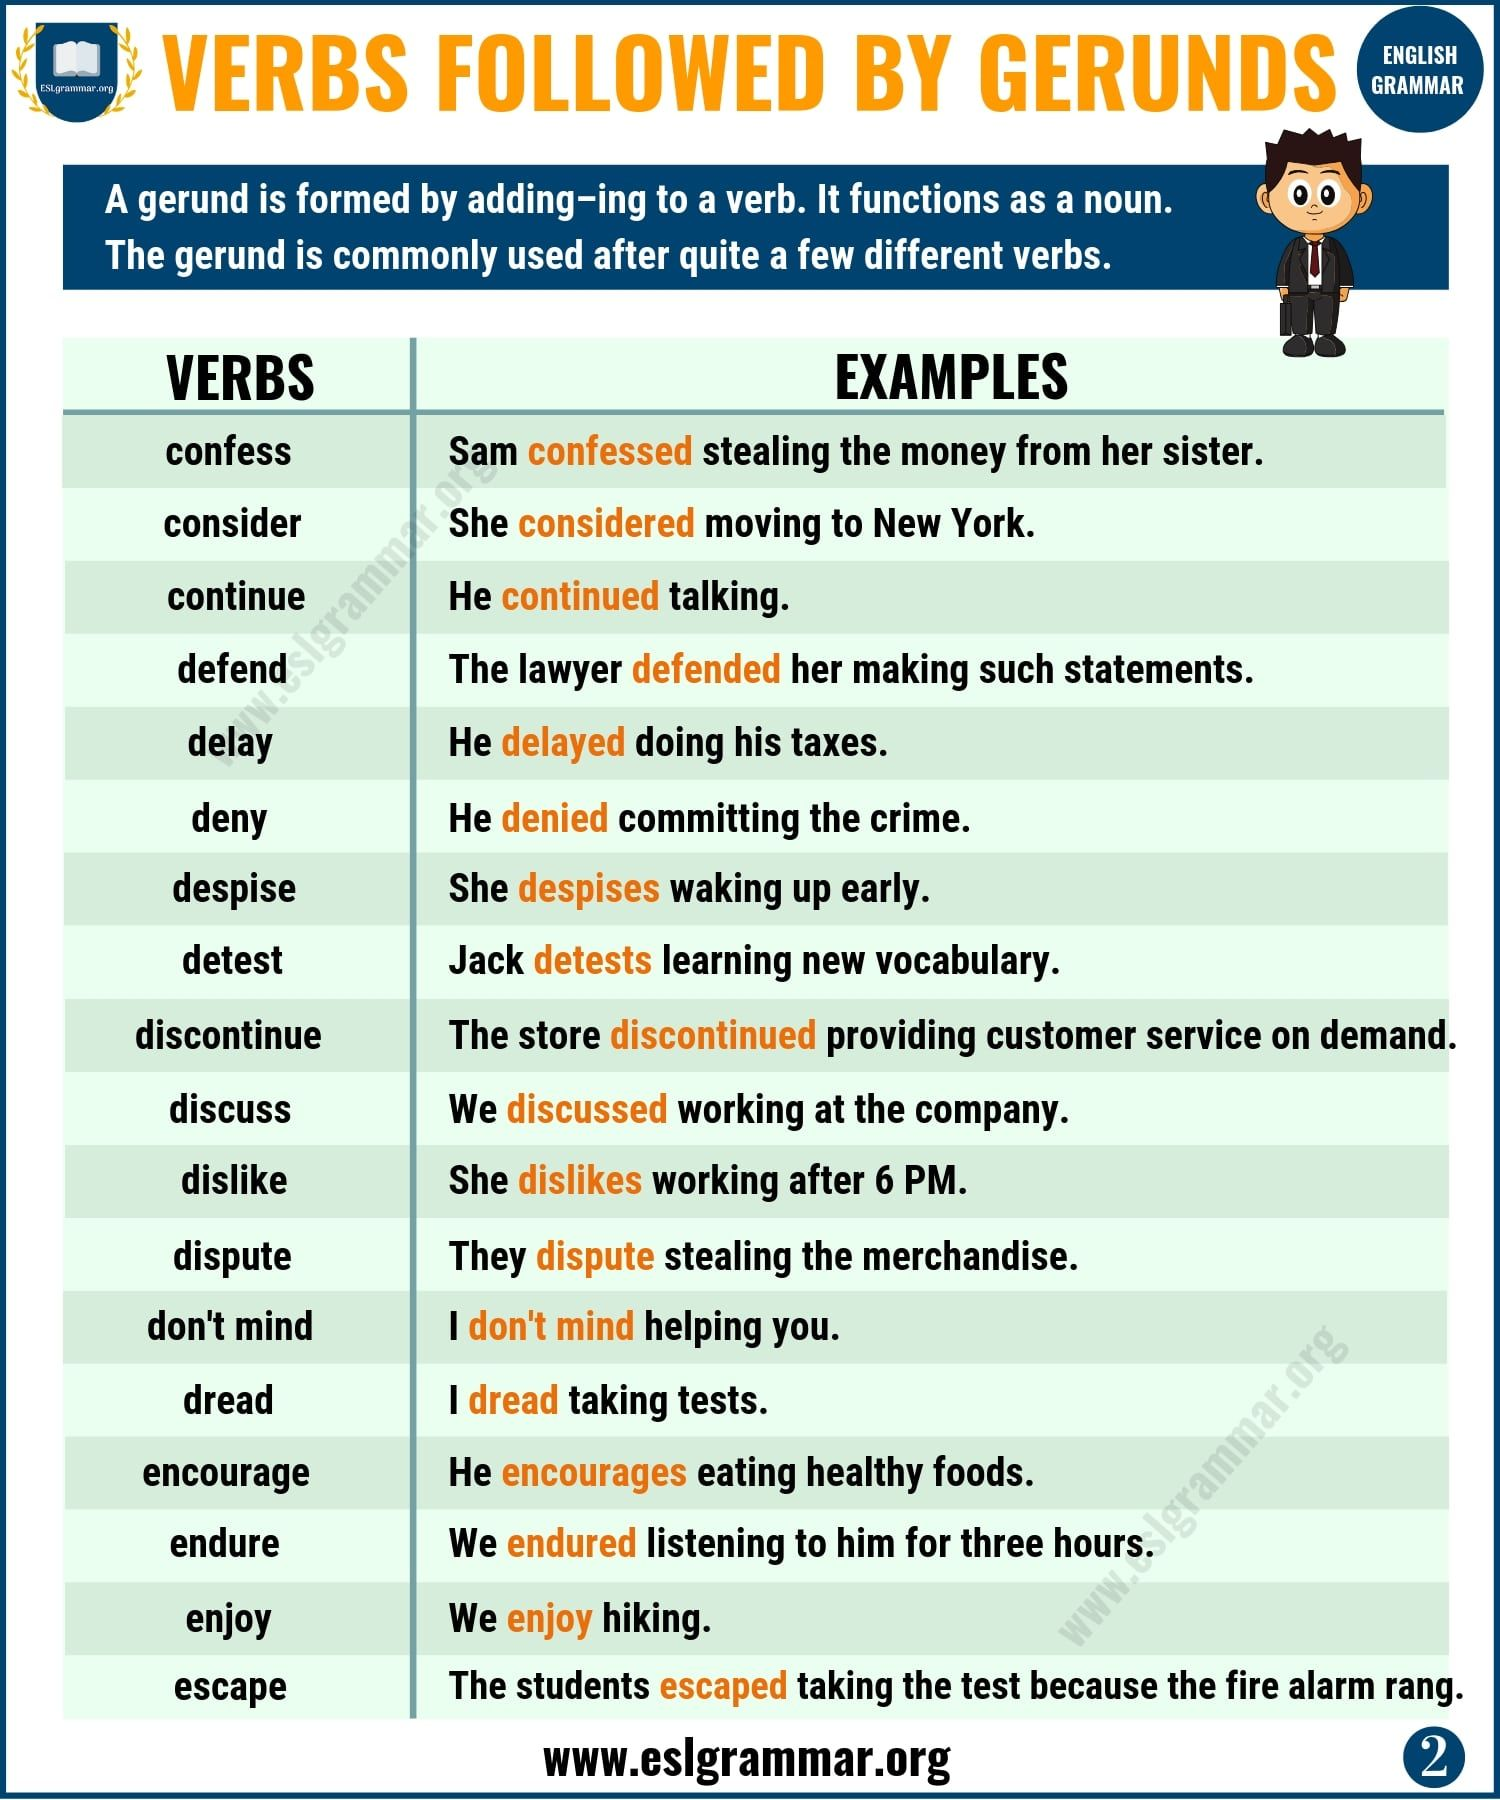 Definition Amp Useful List Of Verbs Followed By Gerunds With